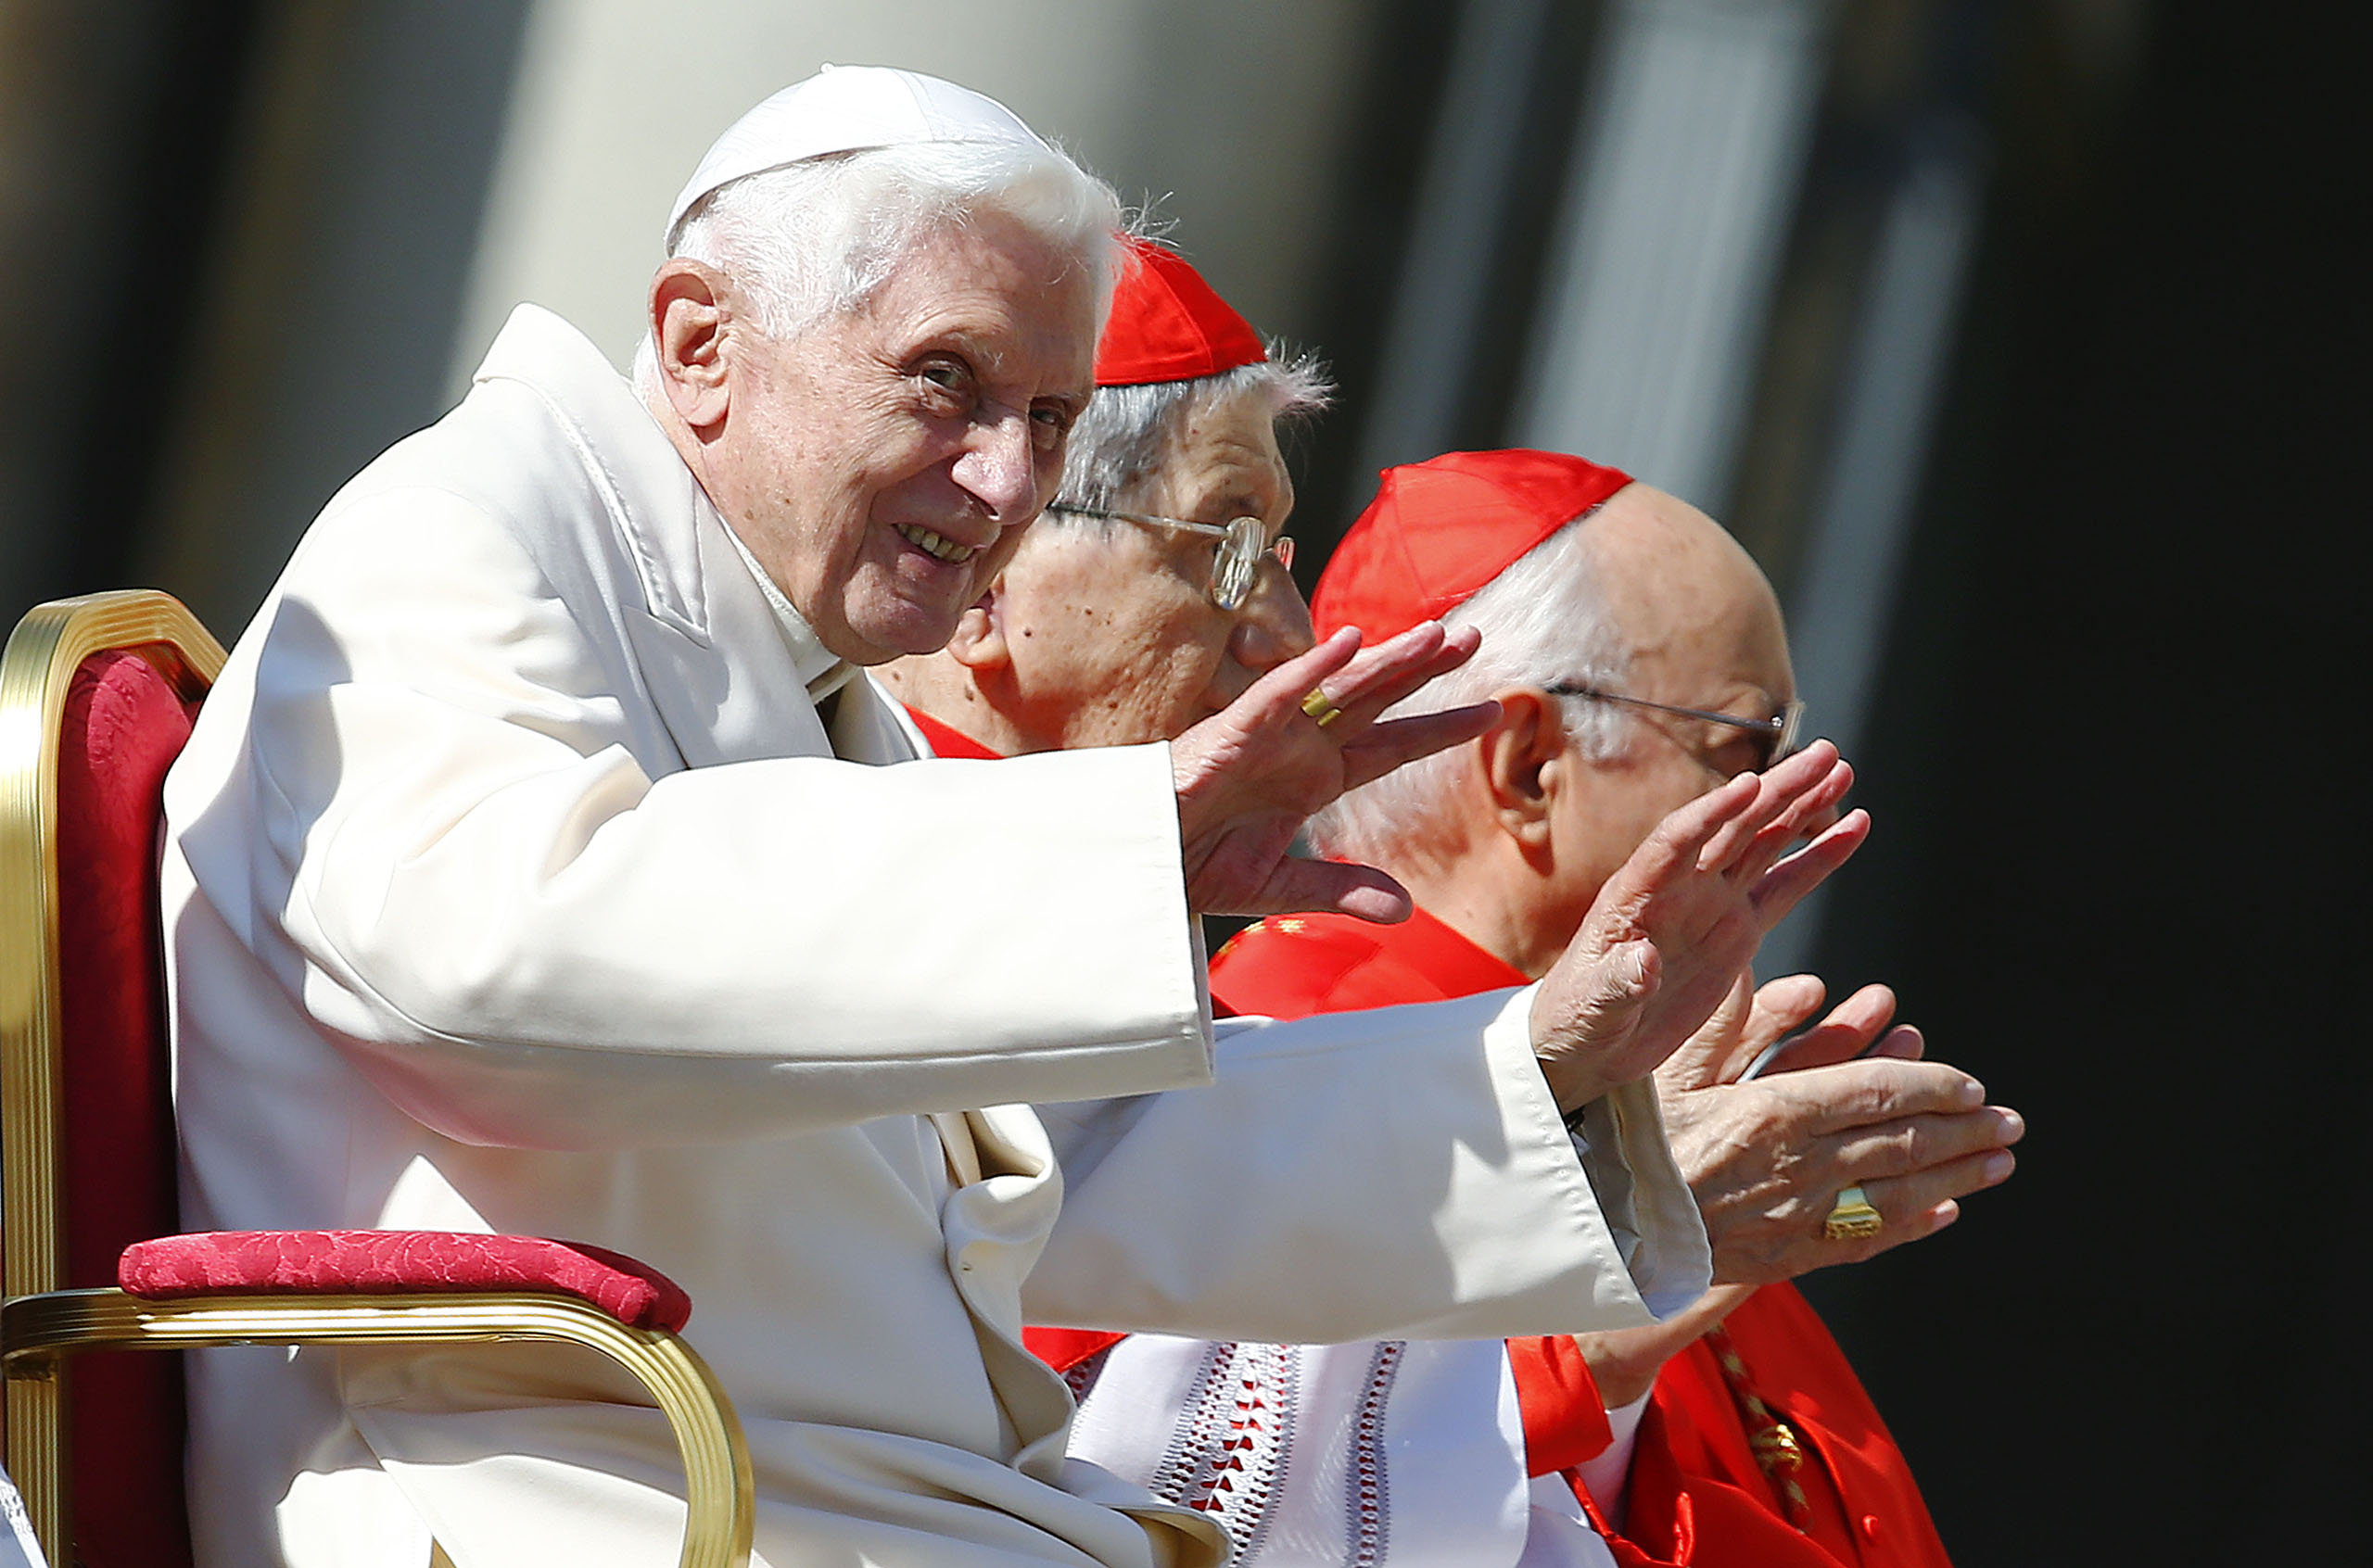 Emeritus Pope Benedict XVI waves before a mass in Saint Peter's square at the Vatican, Sept. 28, 2014.